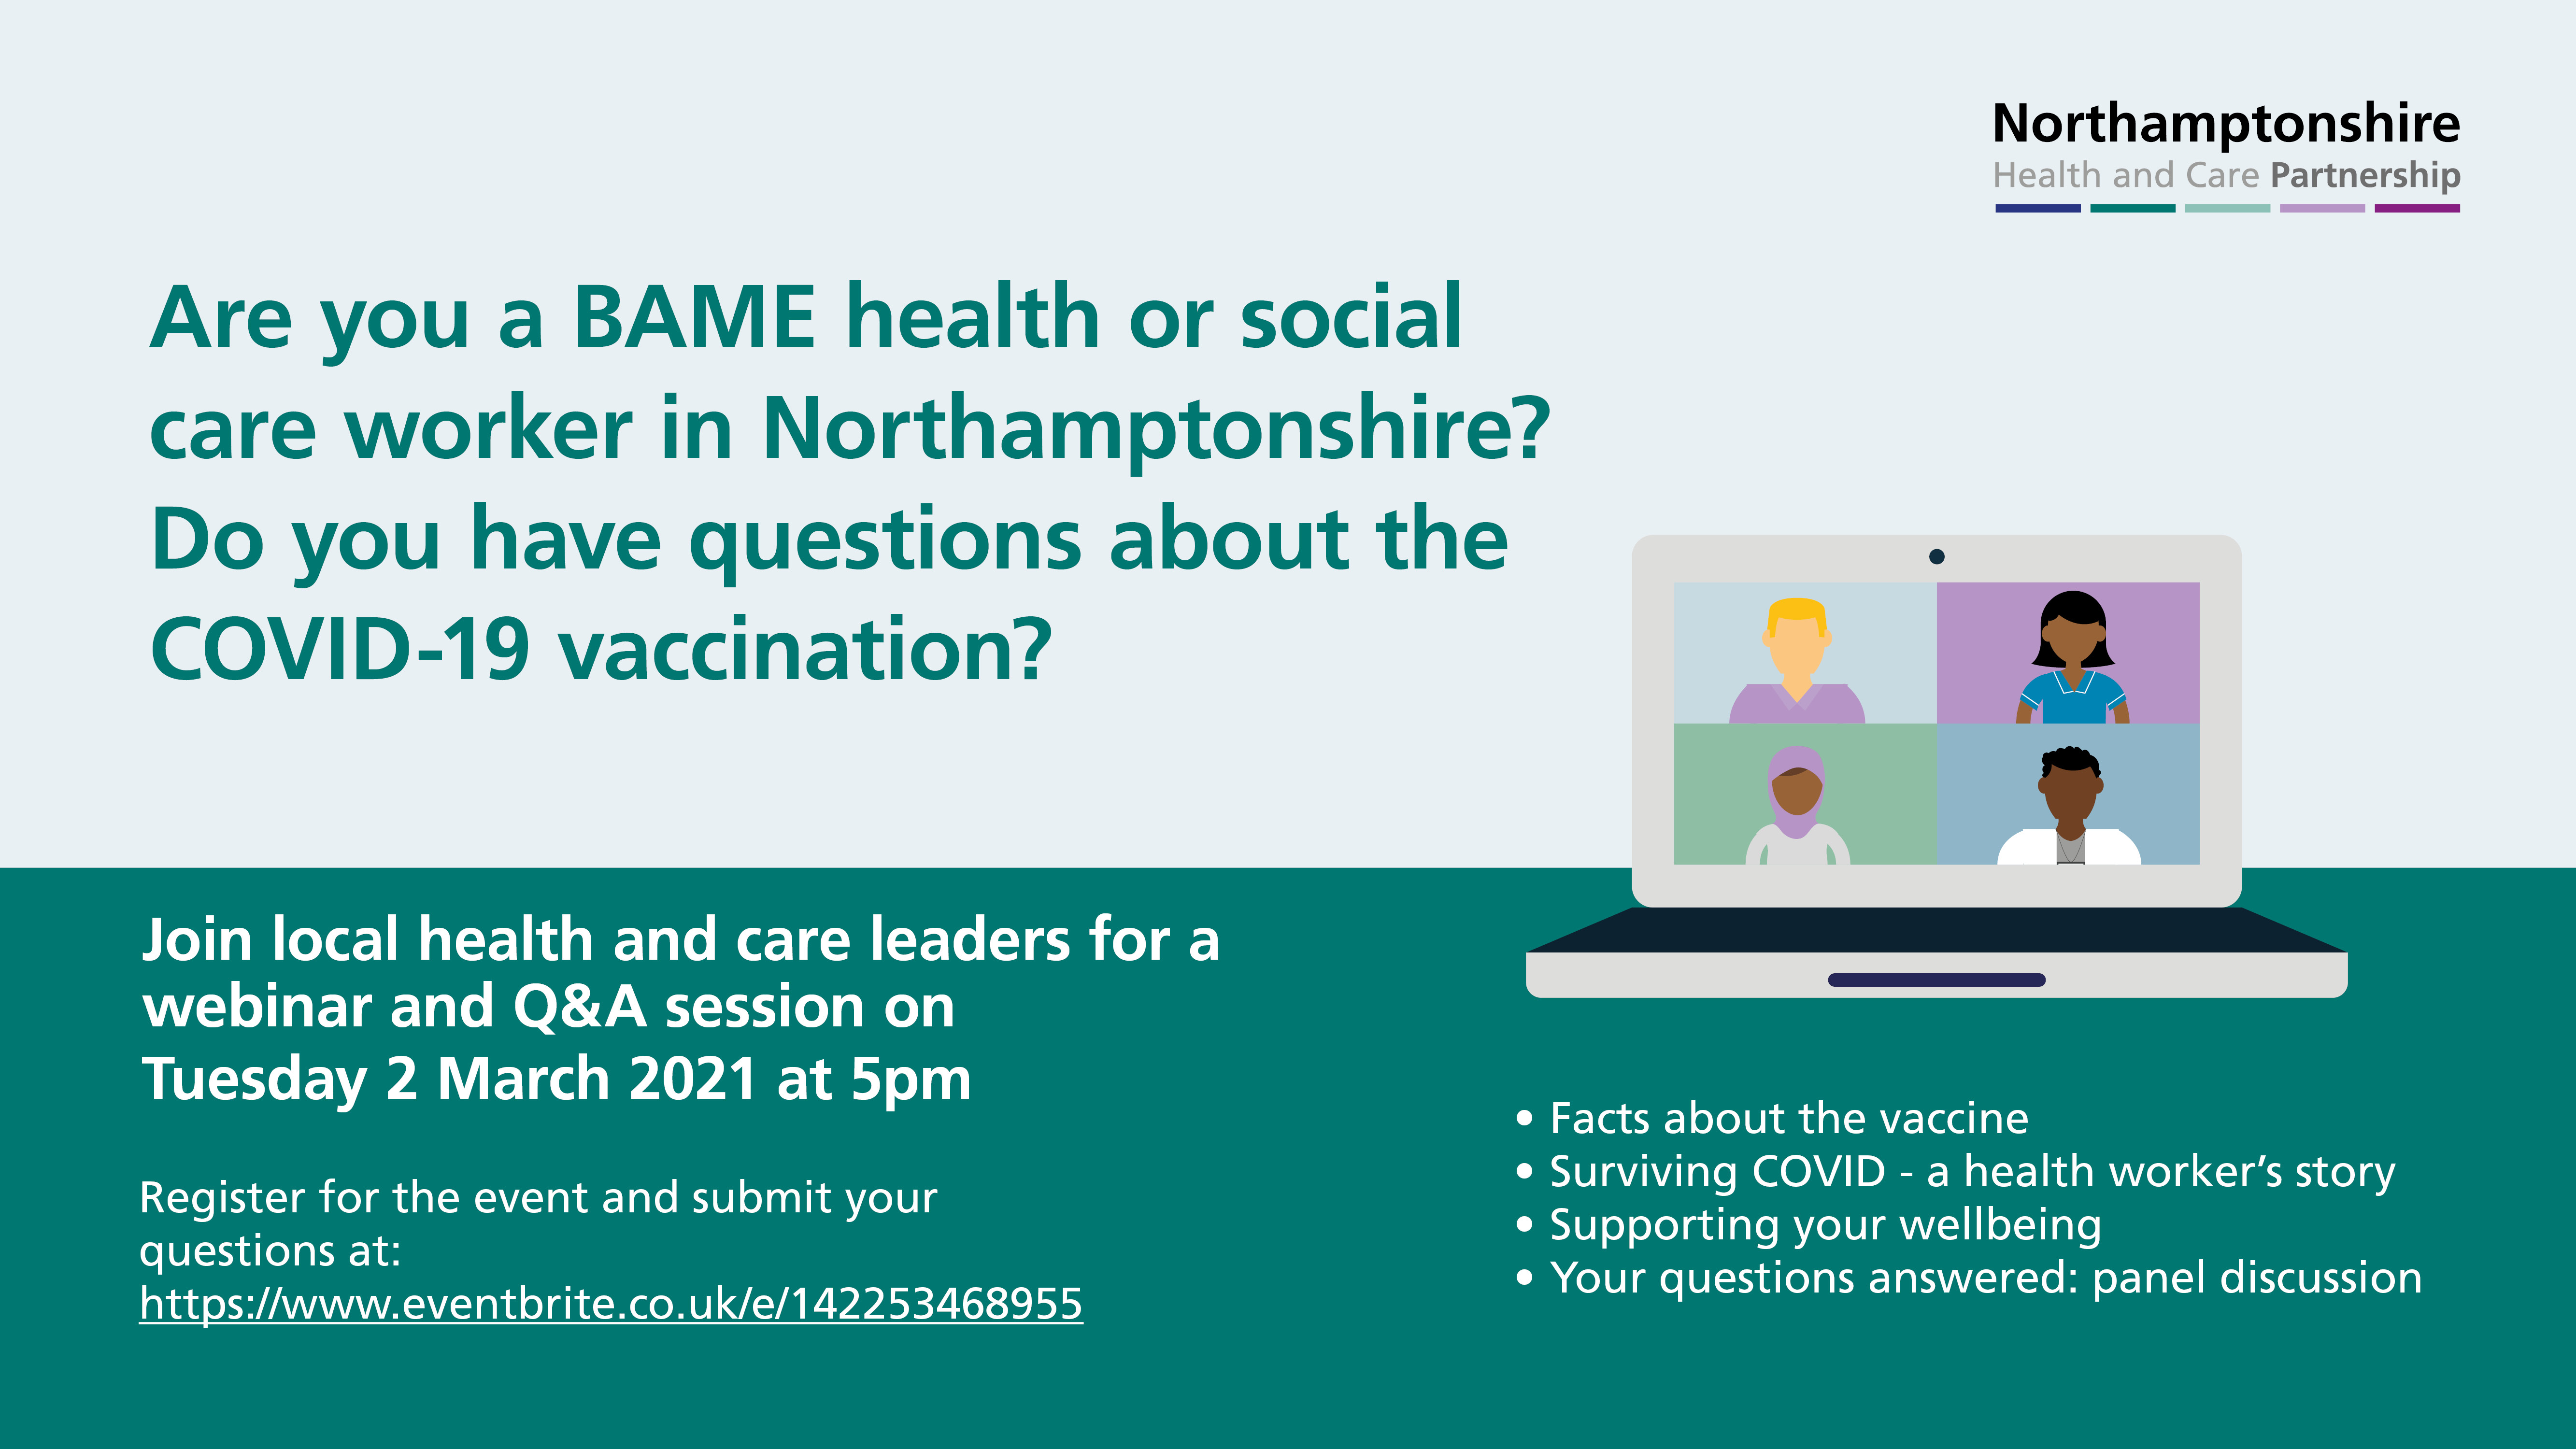 COVID-19 vaccination Q&A event for BAME health and care workers